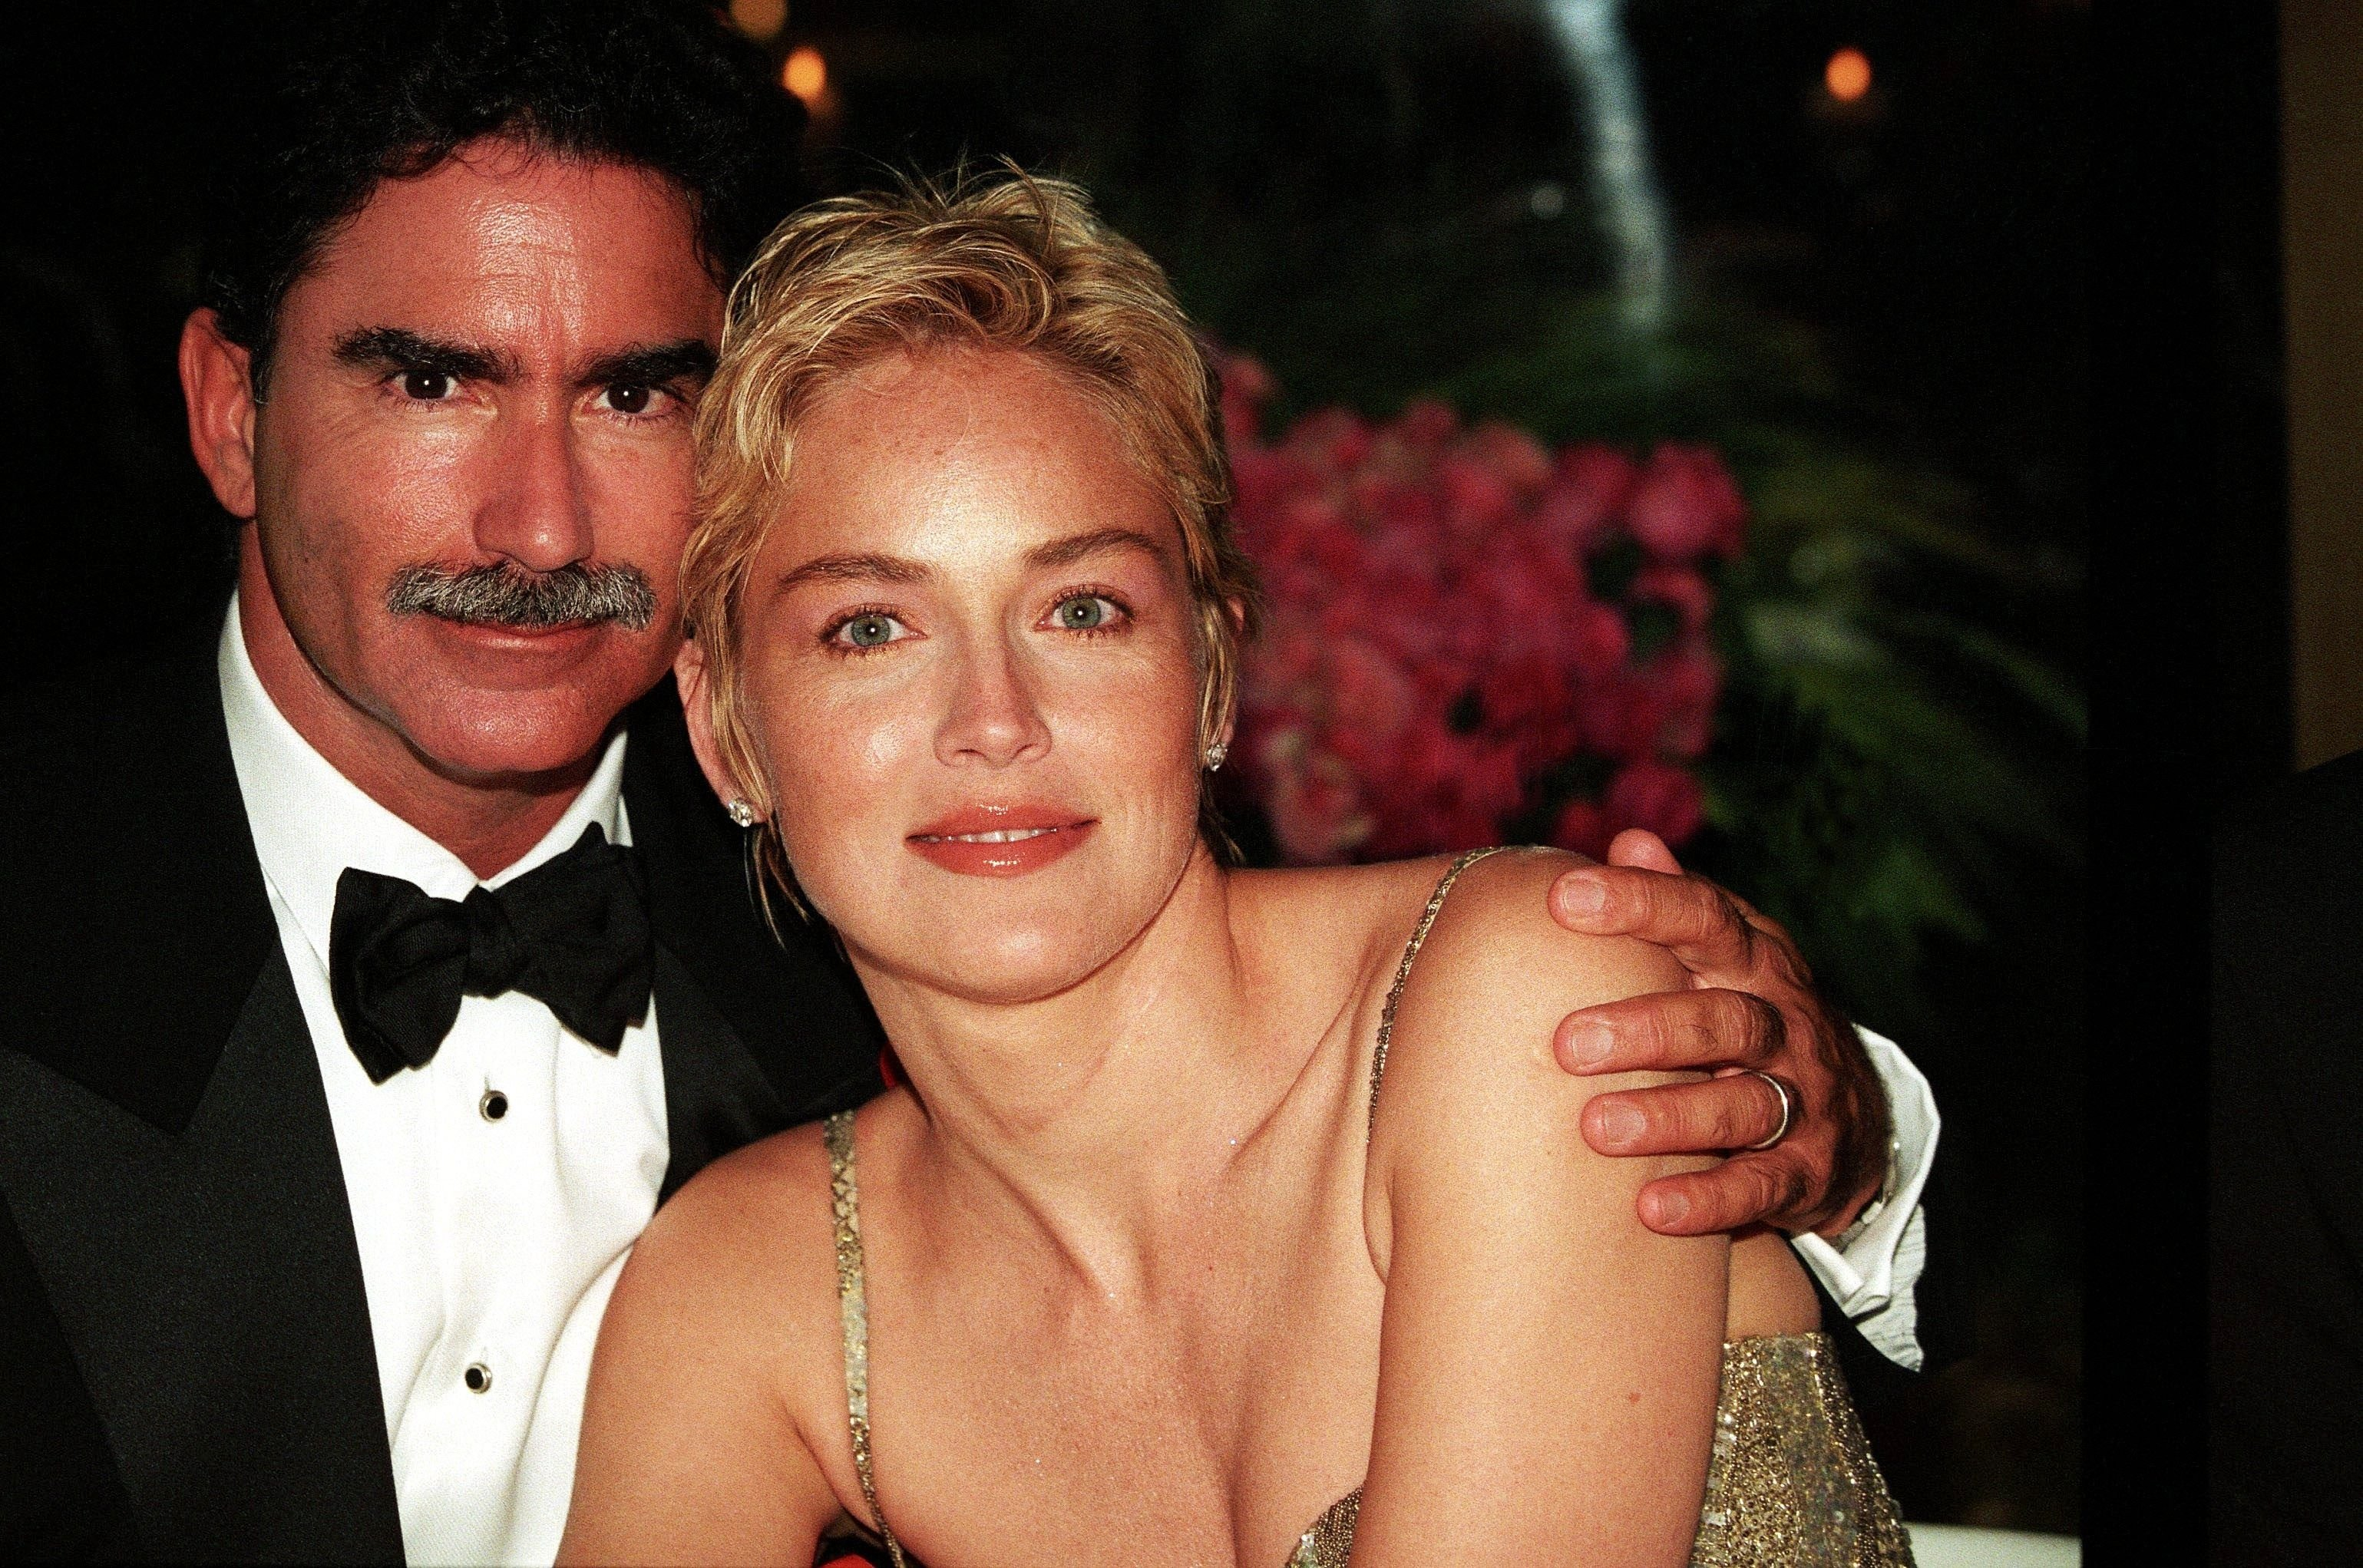 Sharon Stone with Phil Bronstein in 1998 in France | Source: Getty Images